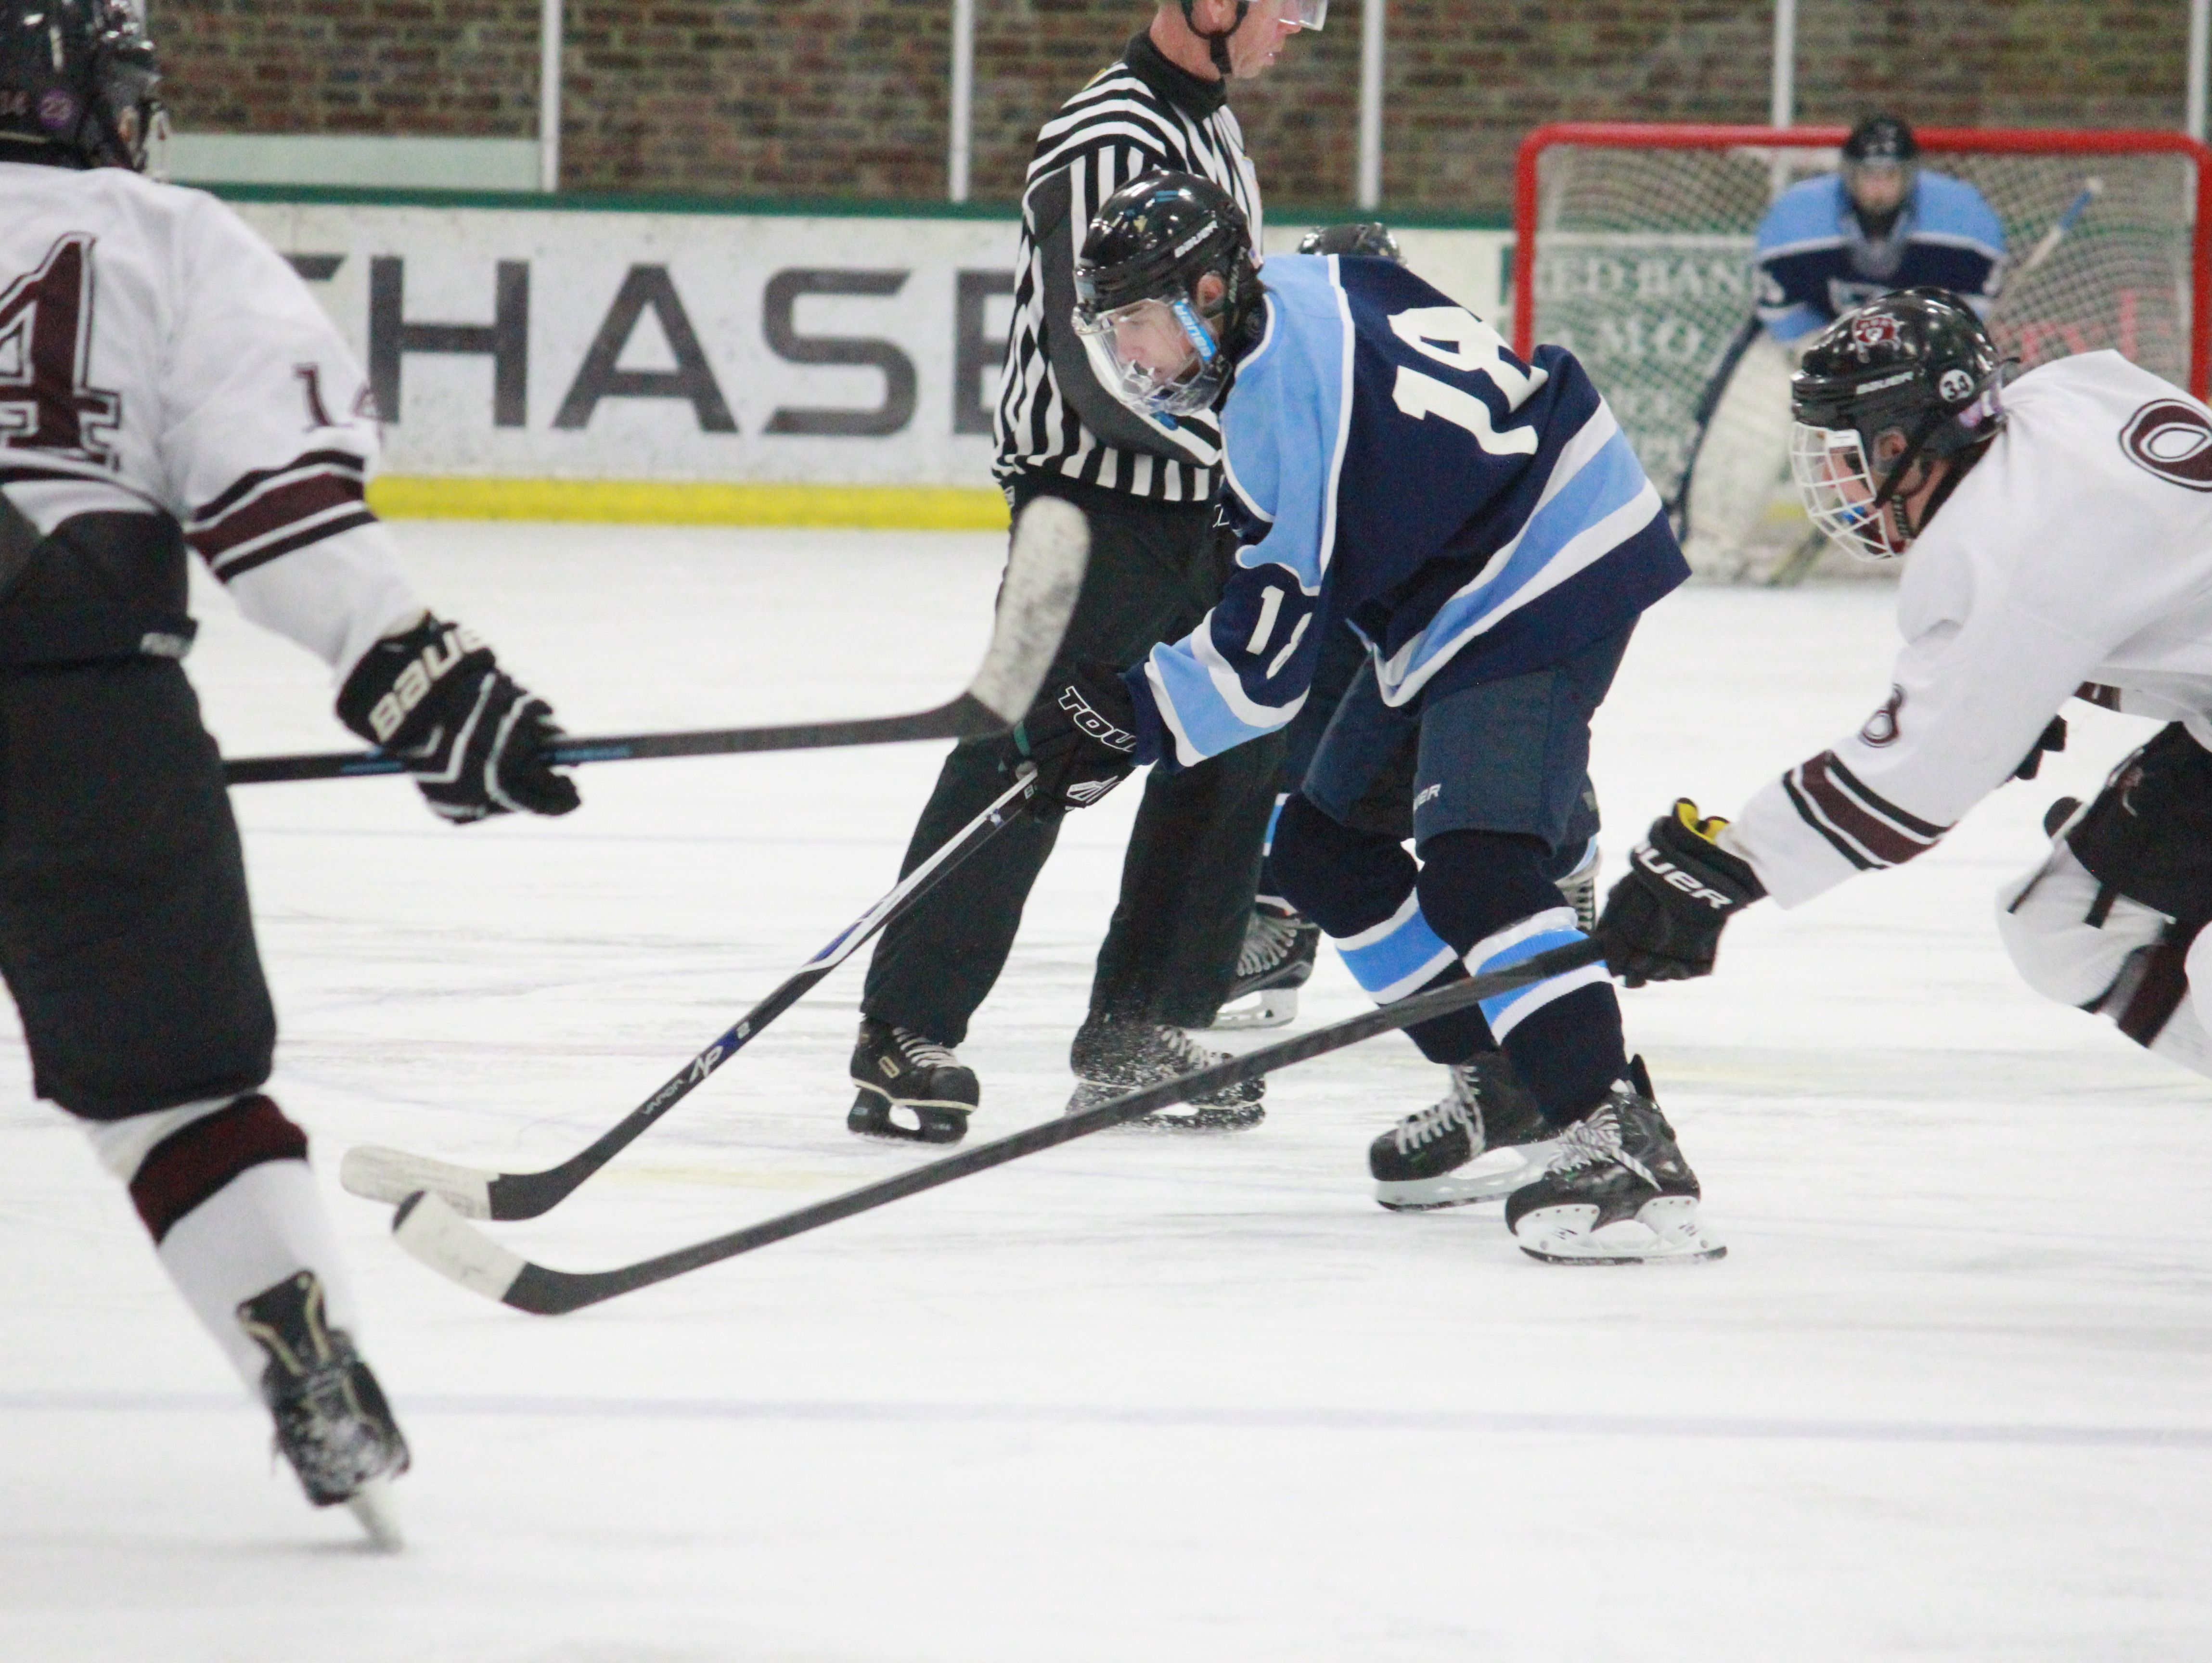 Max Halvorsen (18) scored six goal in Freehold Township's 8-5 win over Red Bank. (Photo: Asbury Park Press)